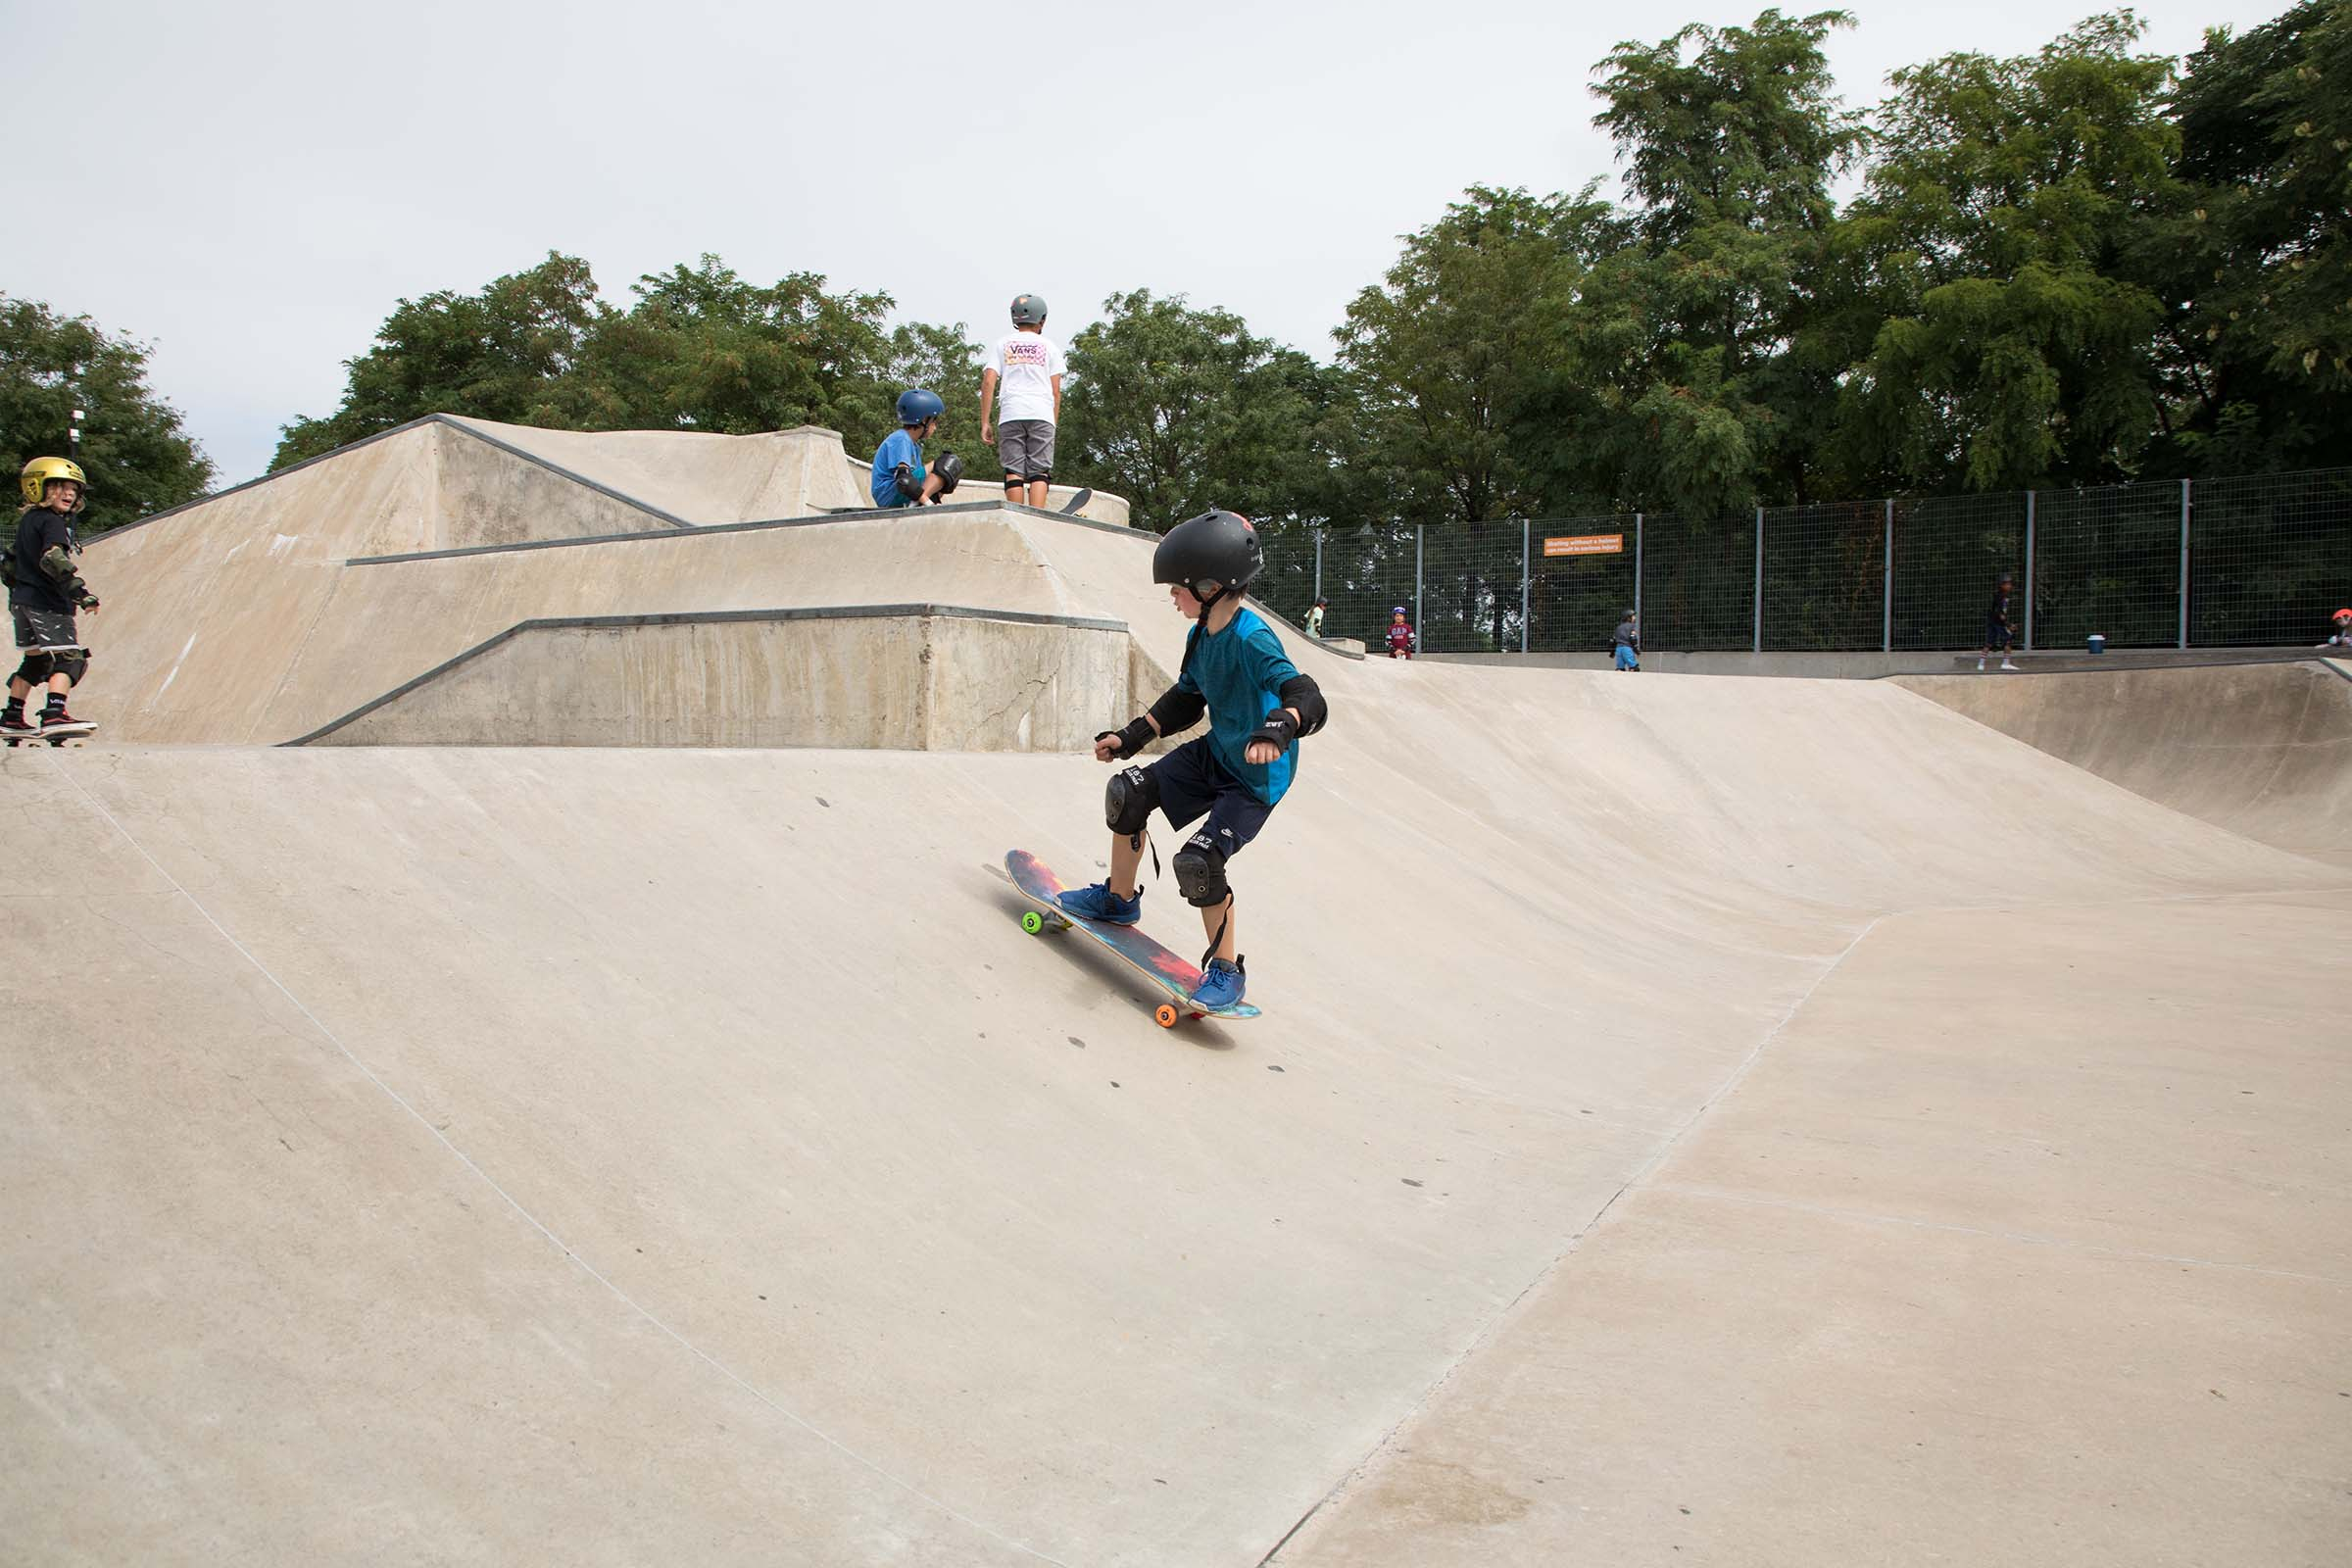 A shot of a kid skateboarder on the diagonal incline at Pier 62's skatepark